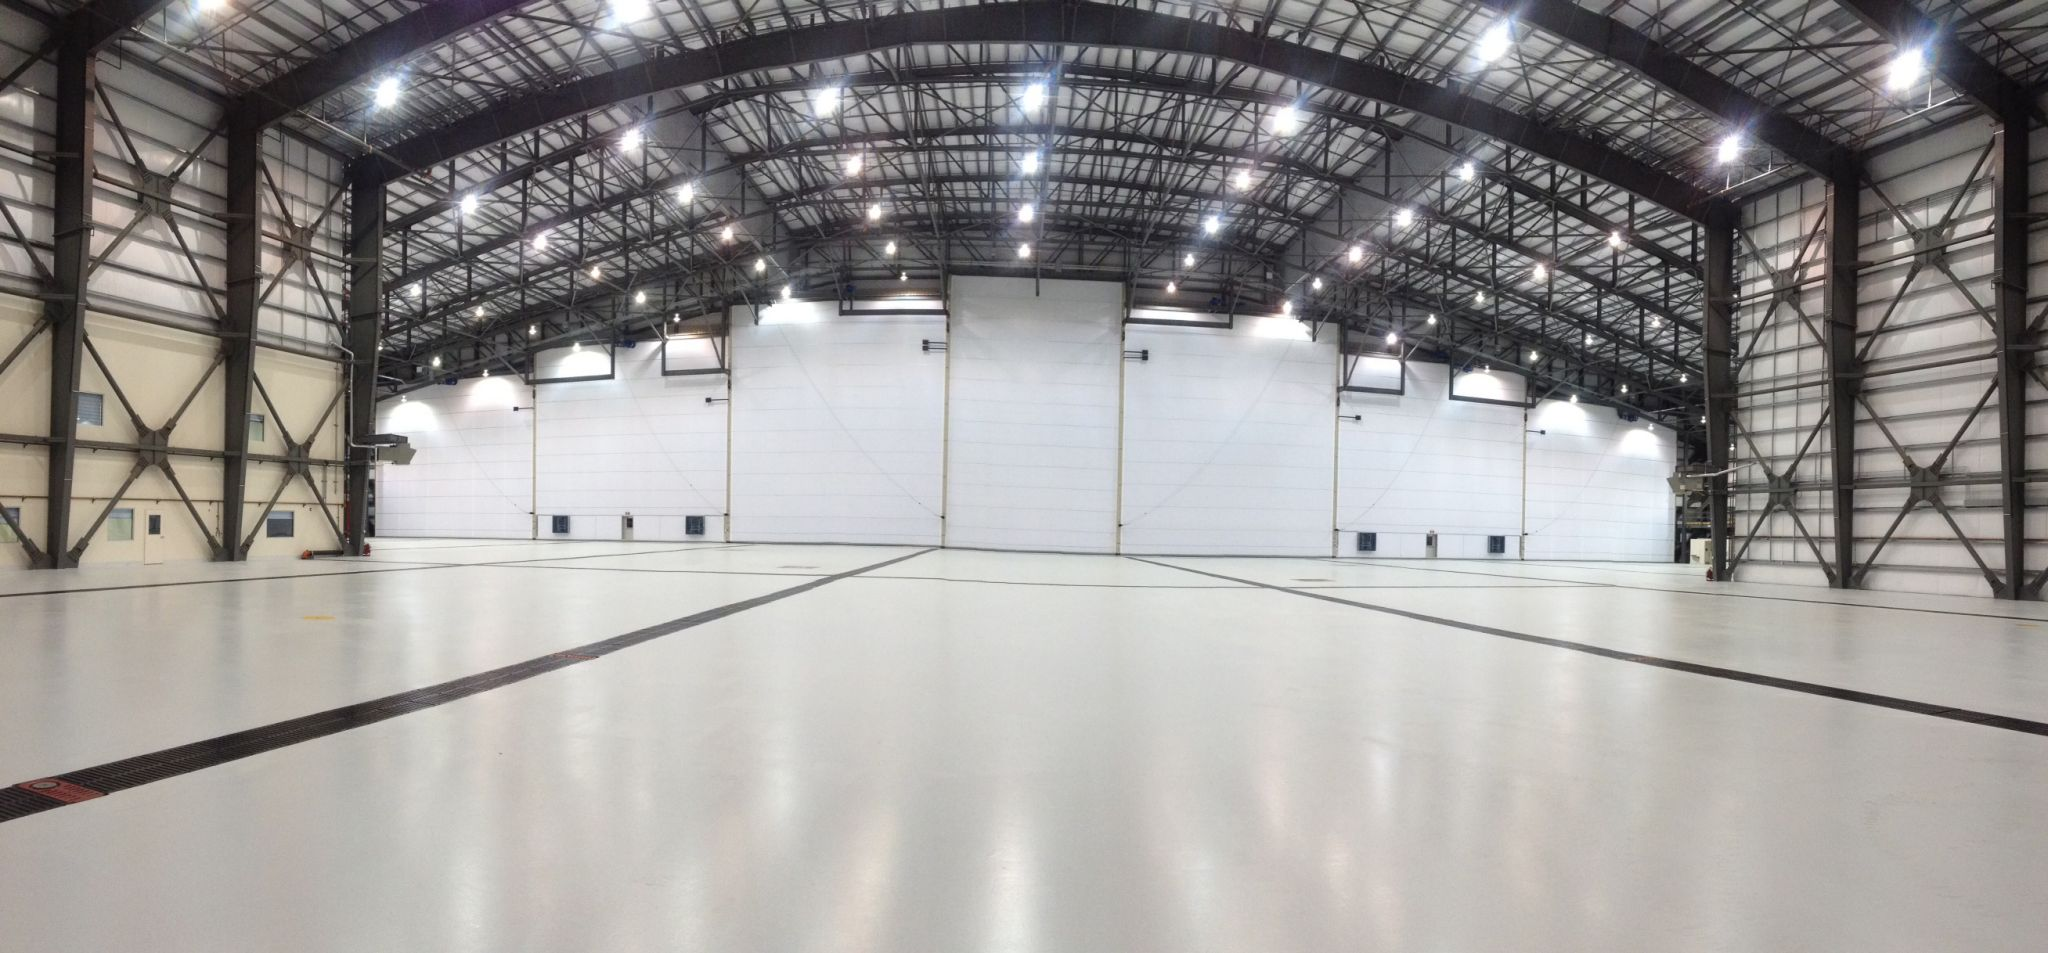 The fabric system seen here in an aviation hangar can accommodate very wide openings and variable heights. The system is made of numerous curtains with vertical mullions that swing up creating a natural opening to suit the width of the wingspan. These door systems are also used in large industrial facilities with translucent fabric enhancing the interior of truck shops and other such buildings.